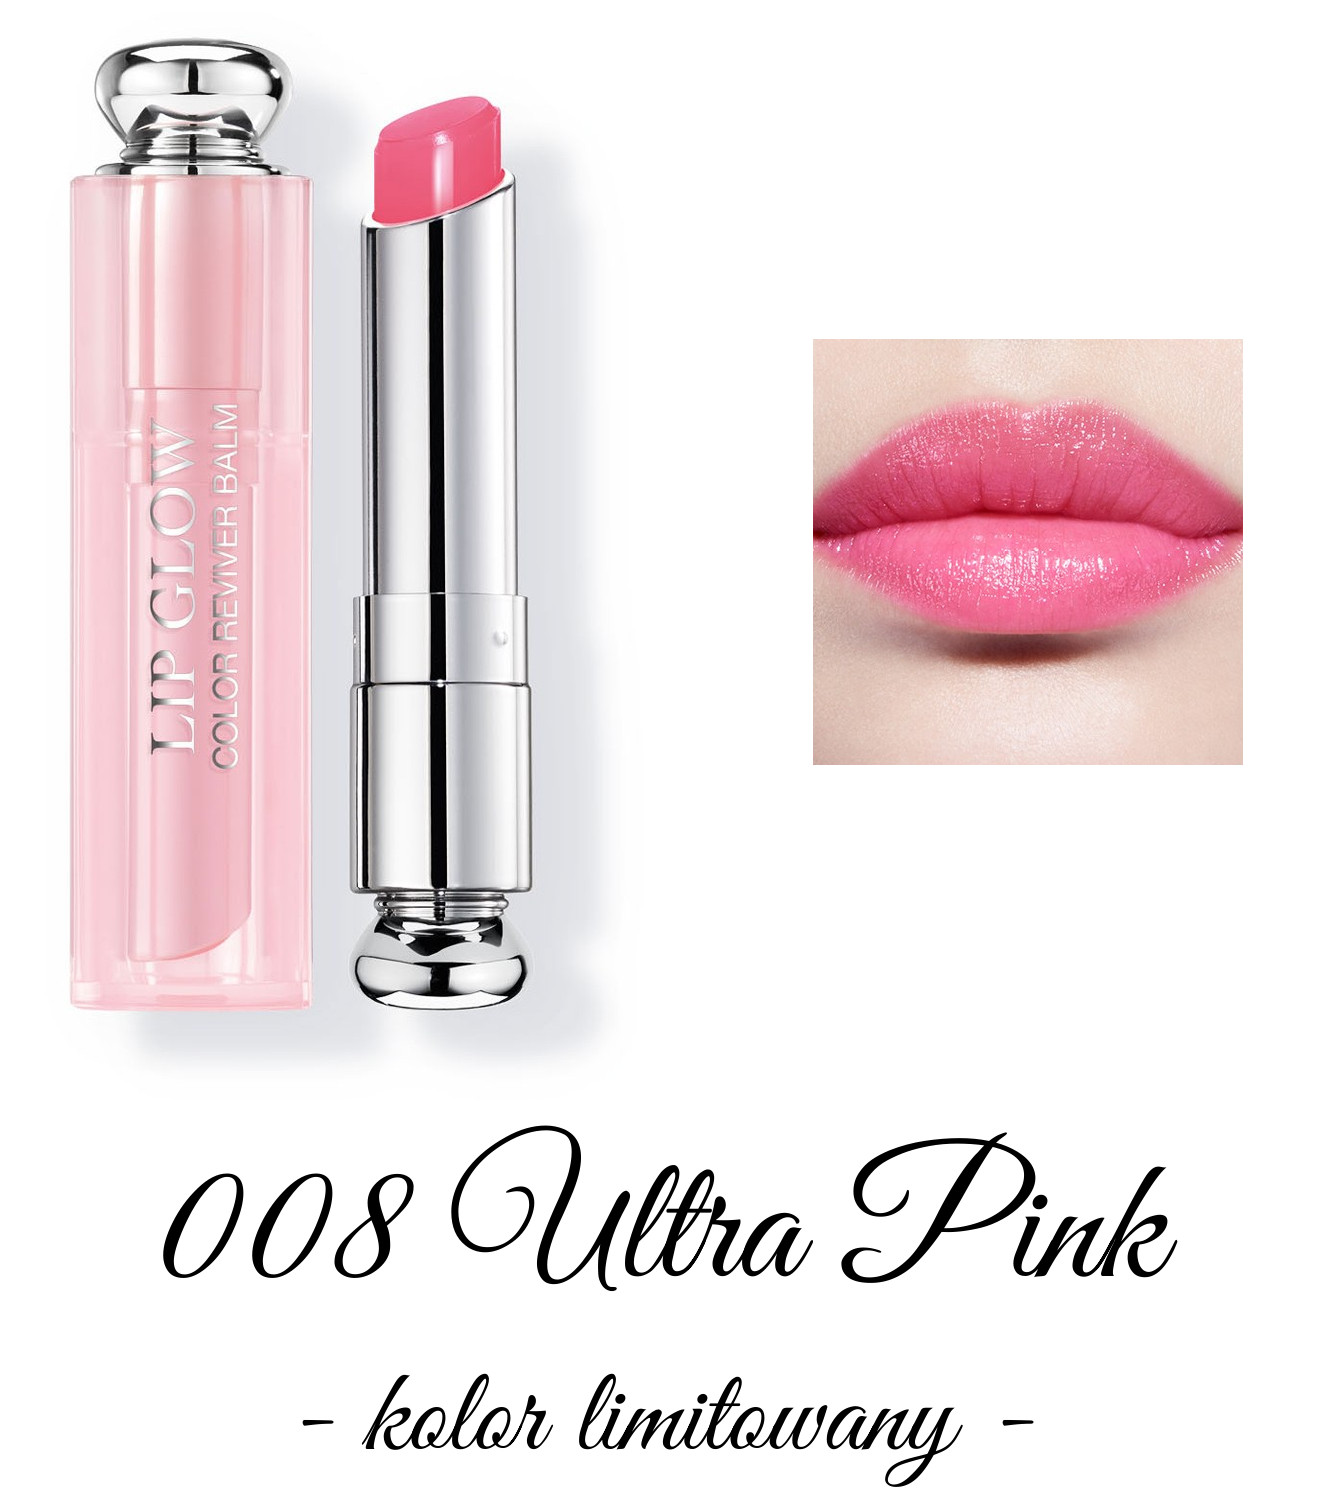 Dior Spring 2018 Collection GLOW ADDICT Dior Addict Lipglow 008 Ultra Pink